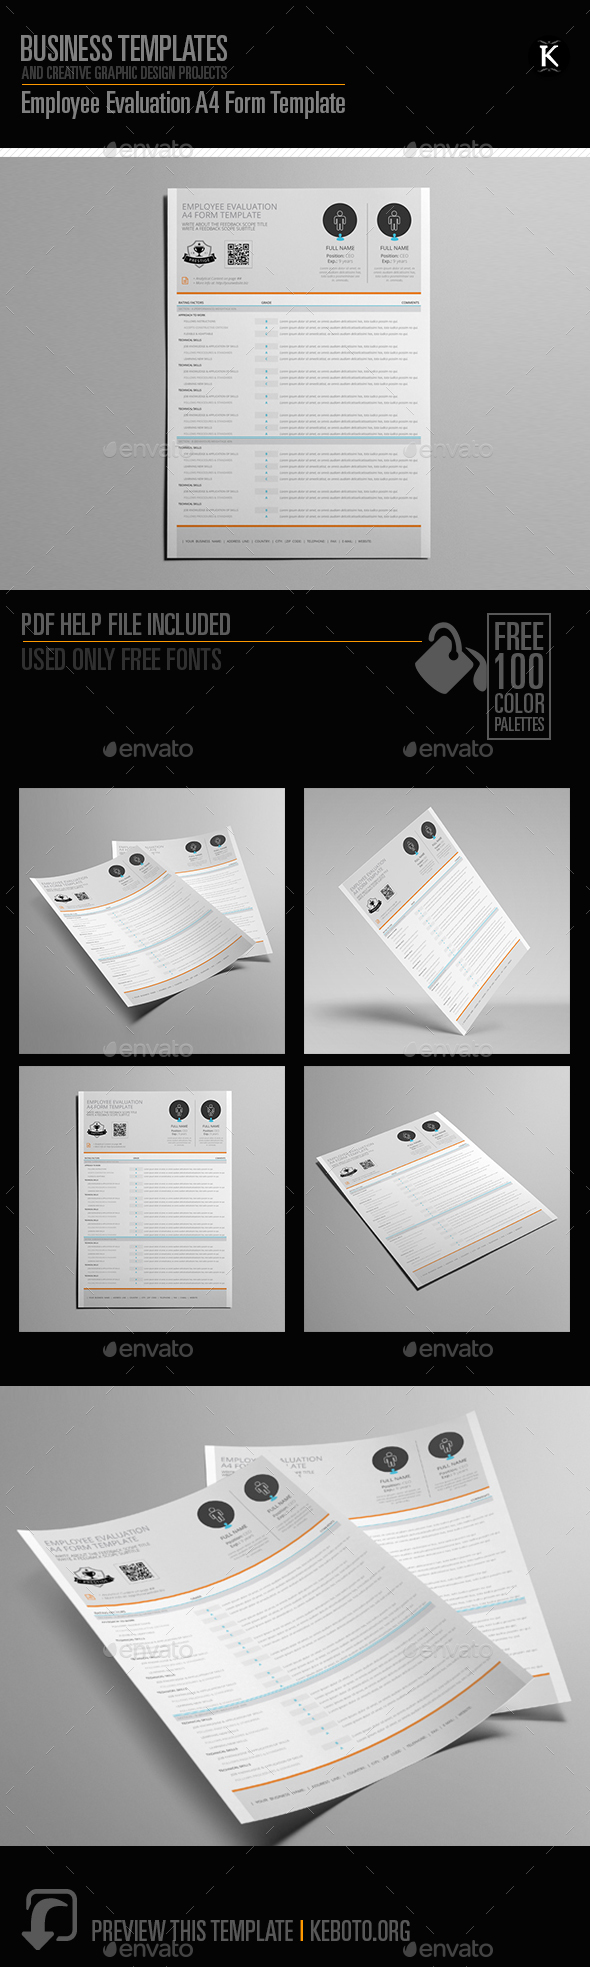 Employee Evaluation A4 Form Template by Keboto | GraphicRiver